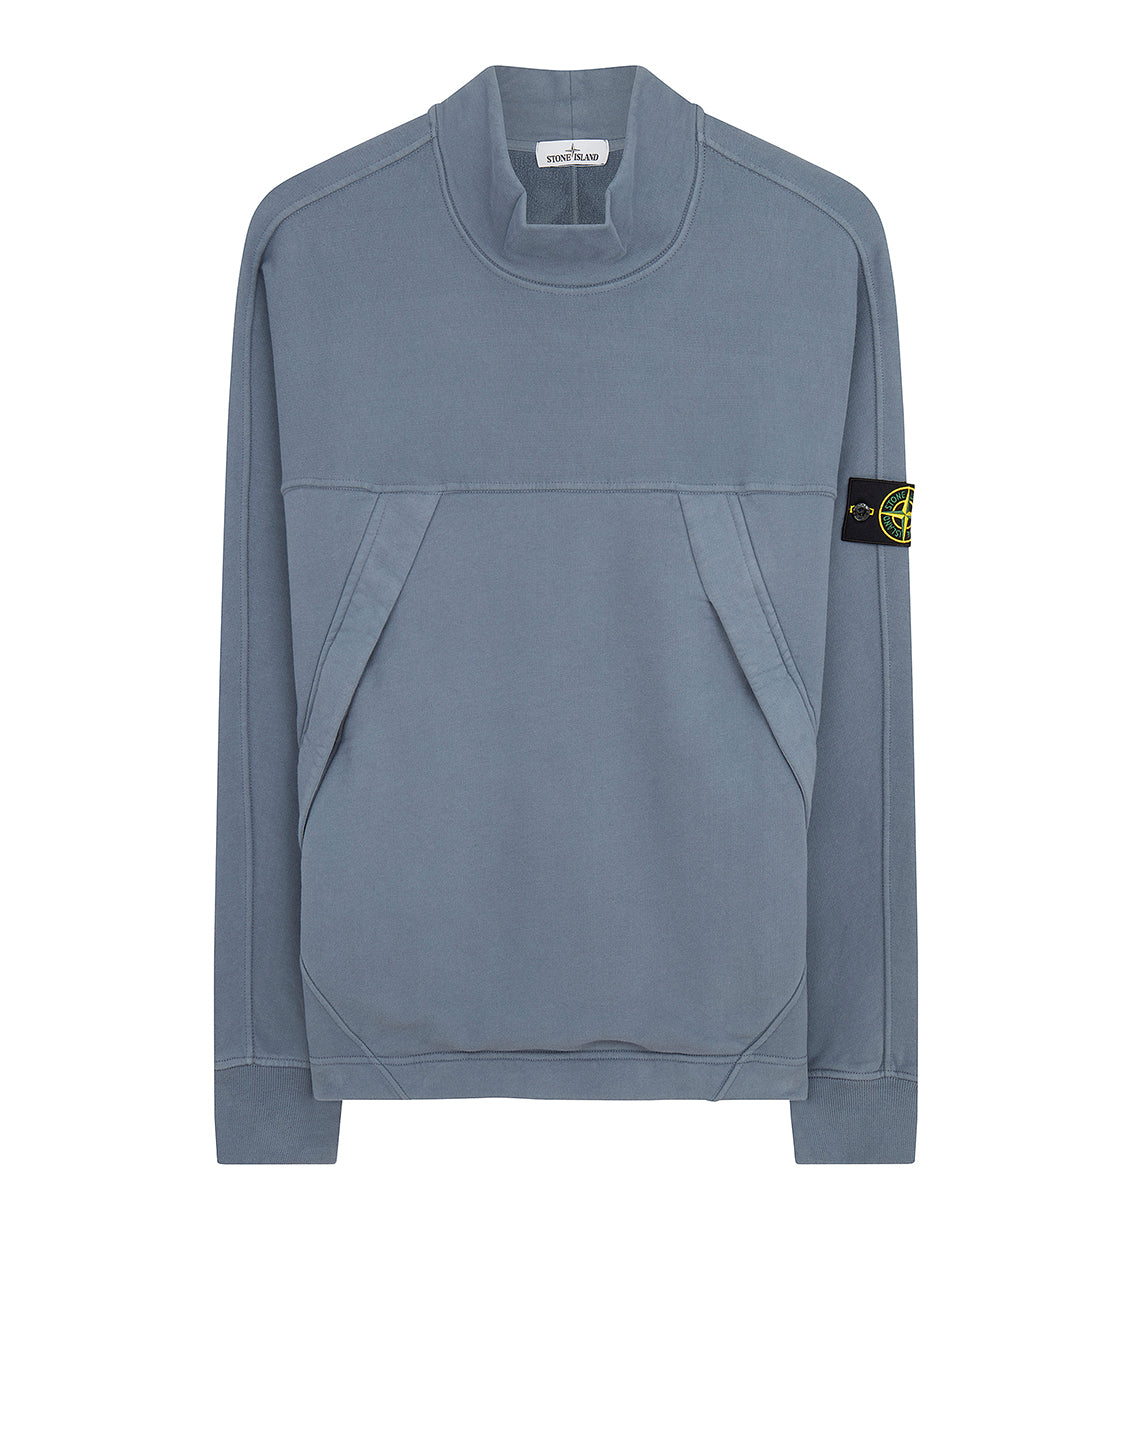 61820 Mock Neck Sweatshirt in Dark Blue